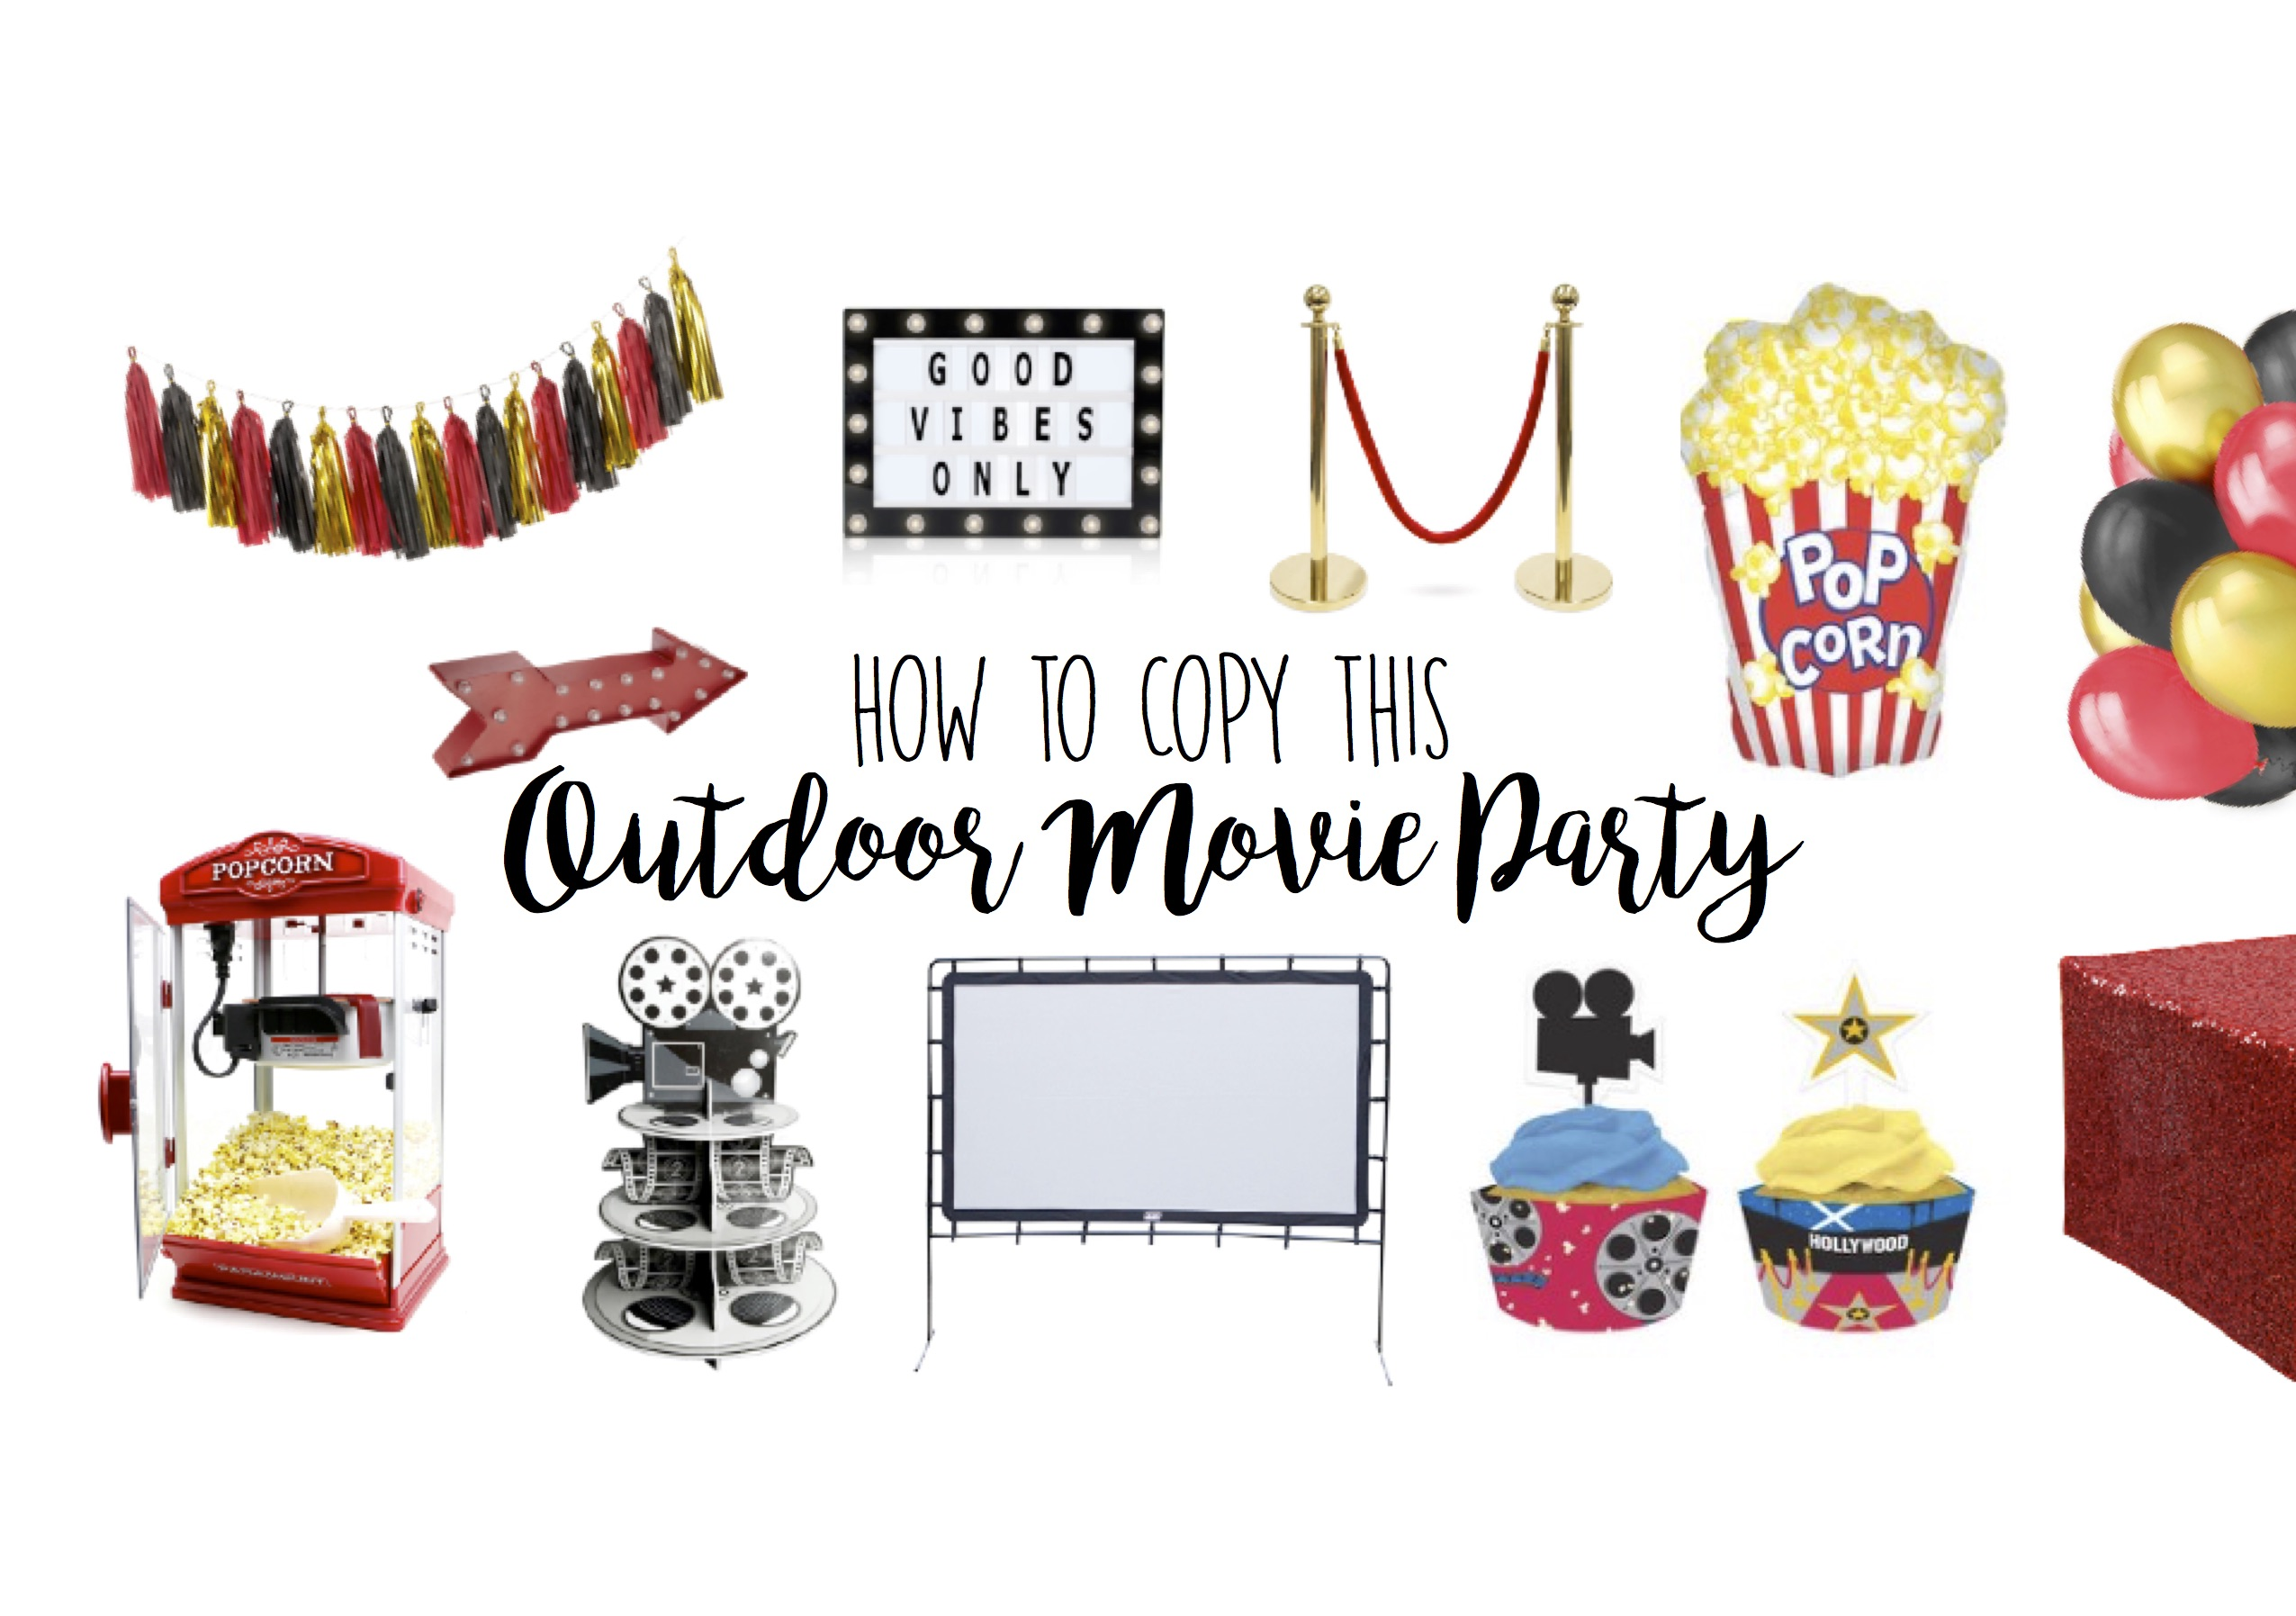 Outdoor Movie Party Theme Ideas - Dive-in Drive-in Birthday Party Theme